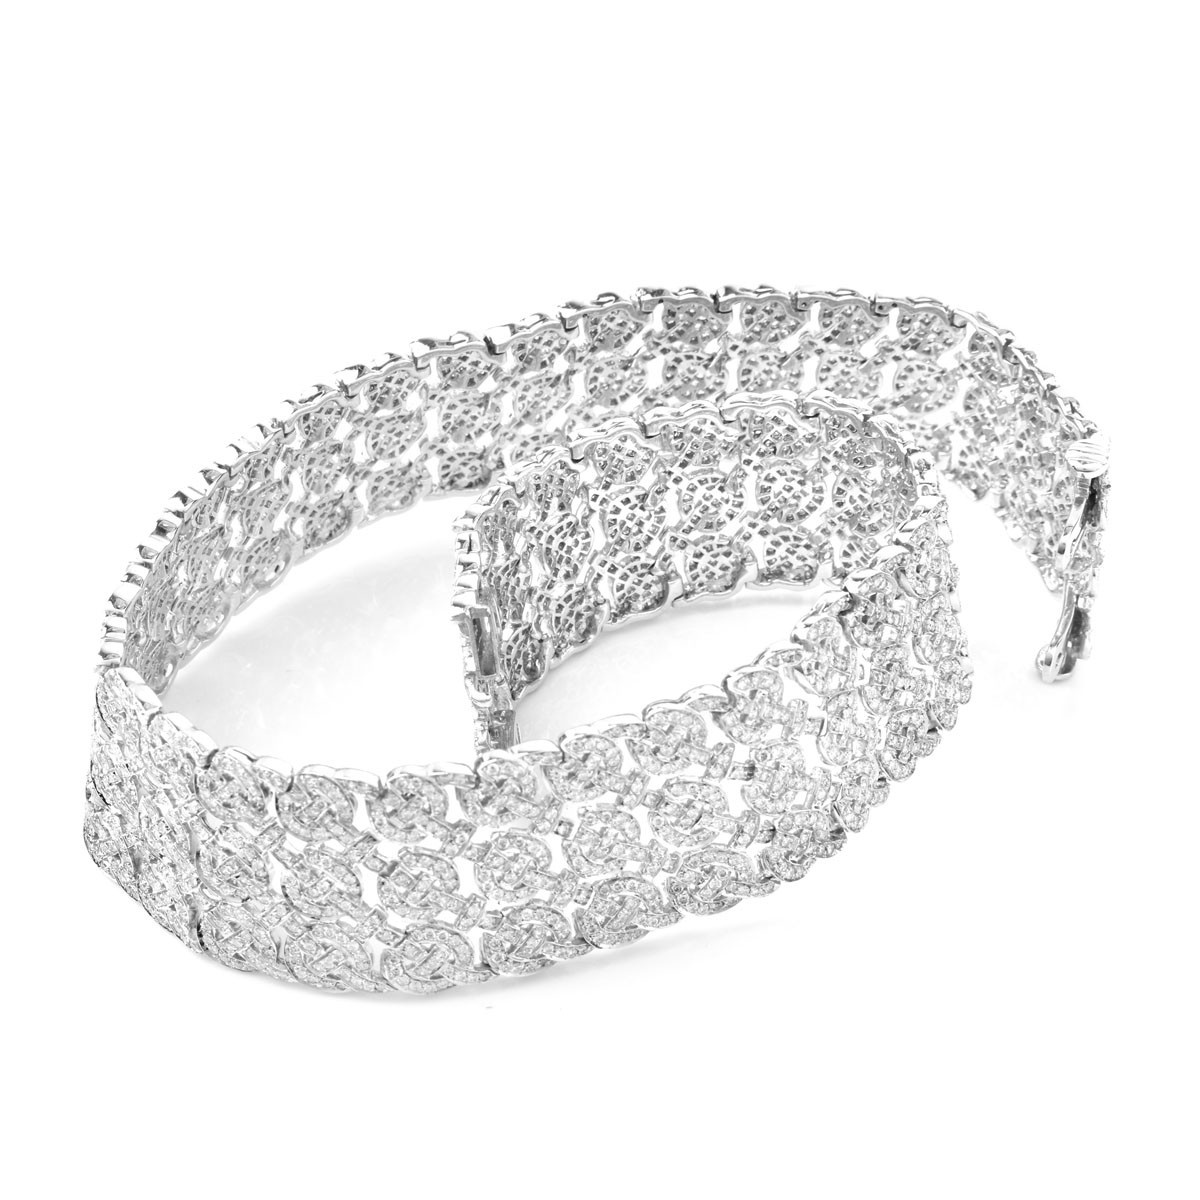 Fine Quality Approx. 22.0 Carat Pave Set Round Brilliant Cut Diamond and 18 Karat White Gold Choker Necklace.